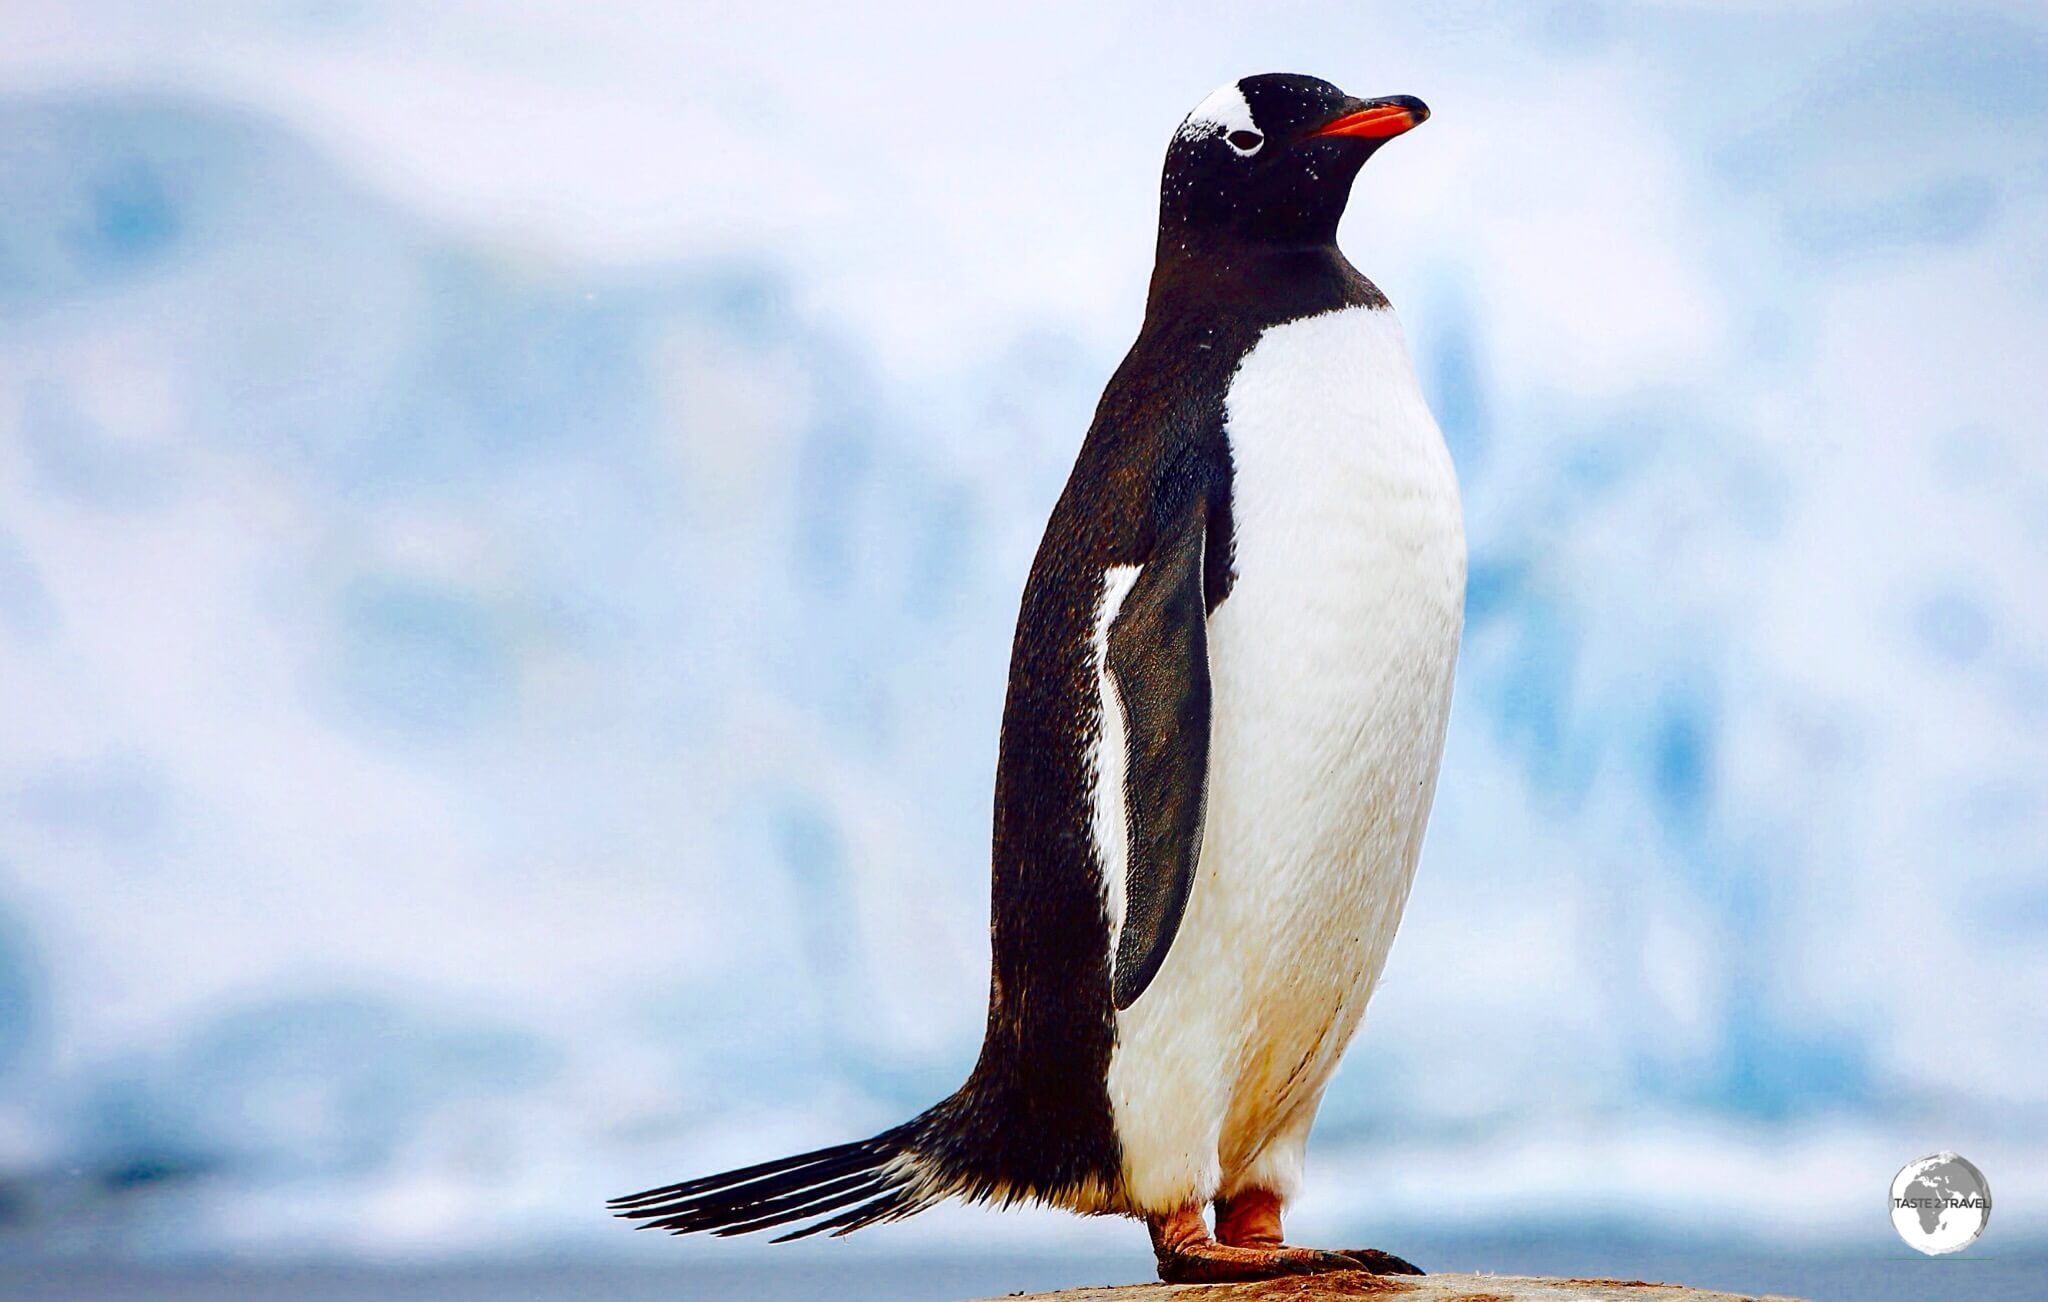 A Gentoo penguin at Port Lockroy. The 'tuxedo' colours of penguins serve as 'counter' camouflage, allowing them hide from predators while in the water.